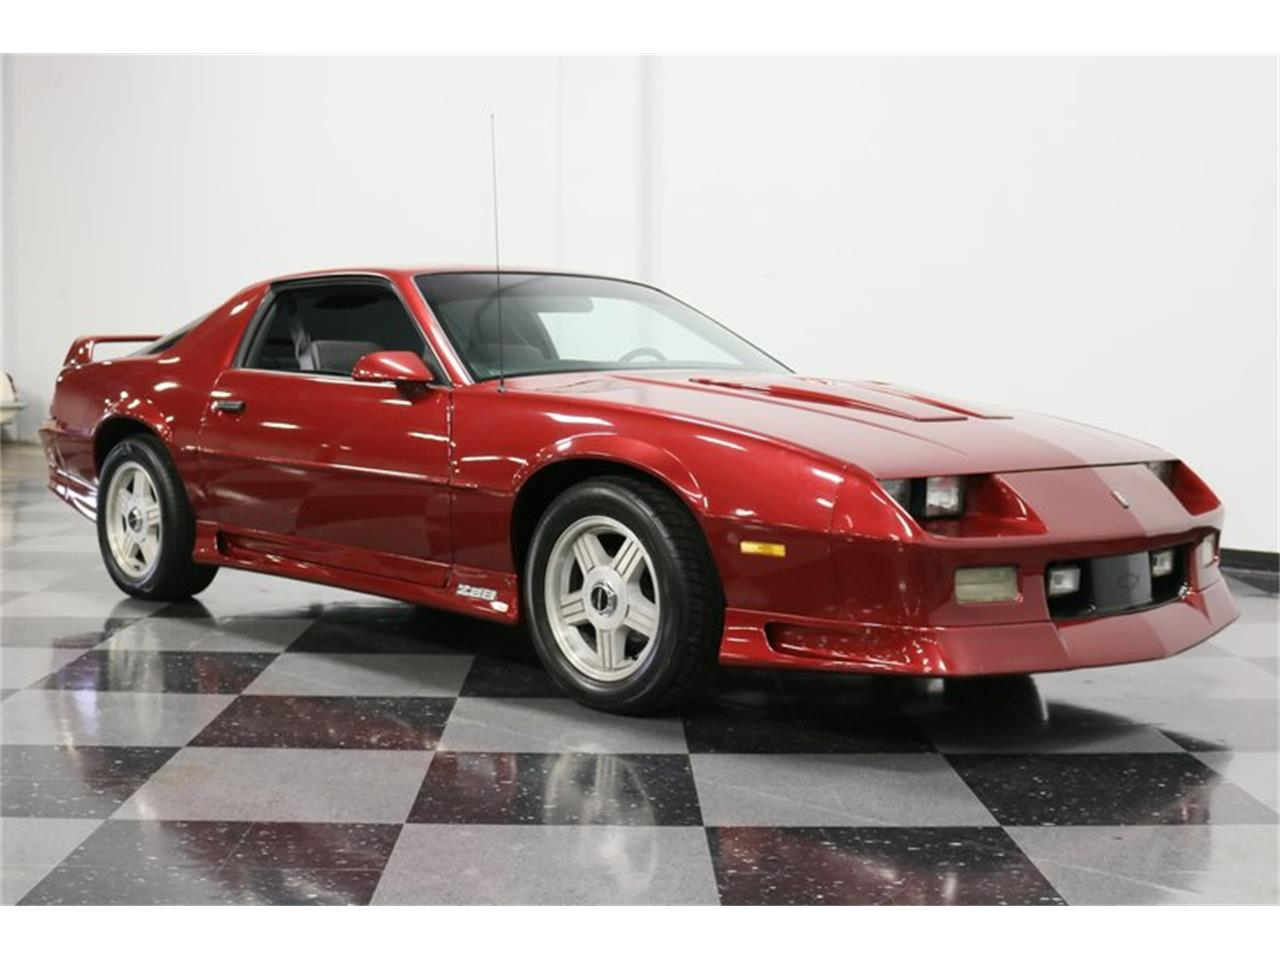 Large Picture of 1991 Camaro located in Texas - $11,995.00 Offered by Streetside Classics - Dallas / Fort Worth - PBLJ